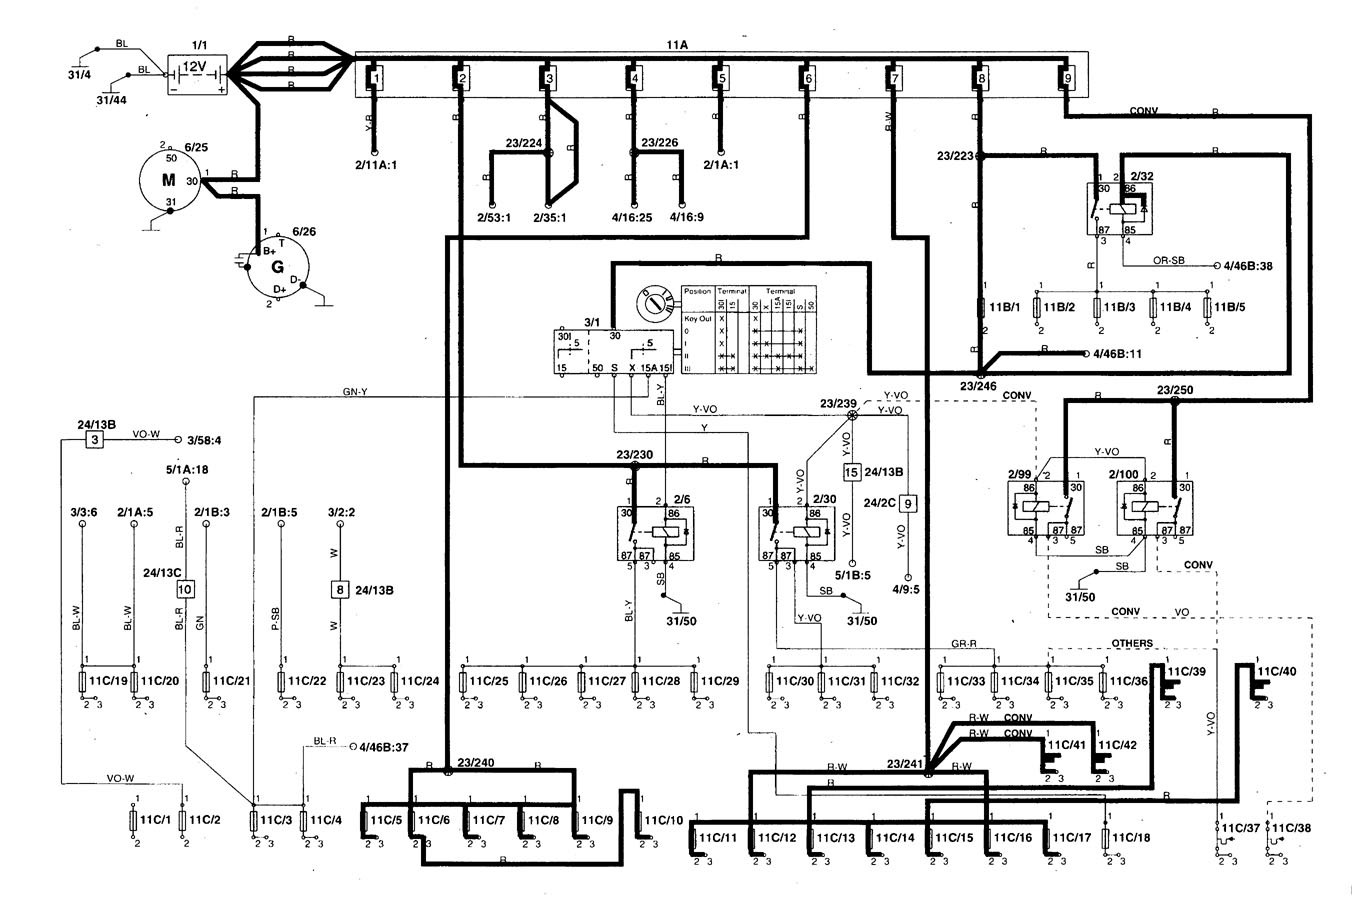 fuse box diagram for volvo s70